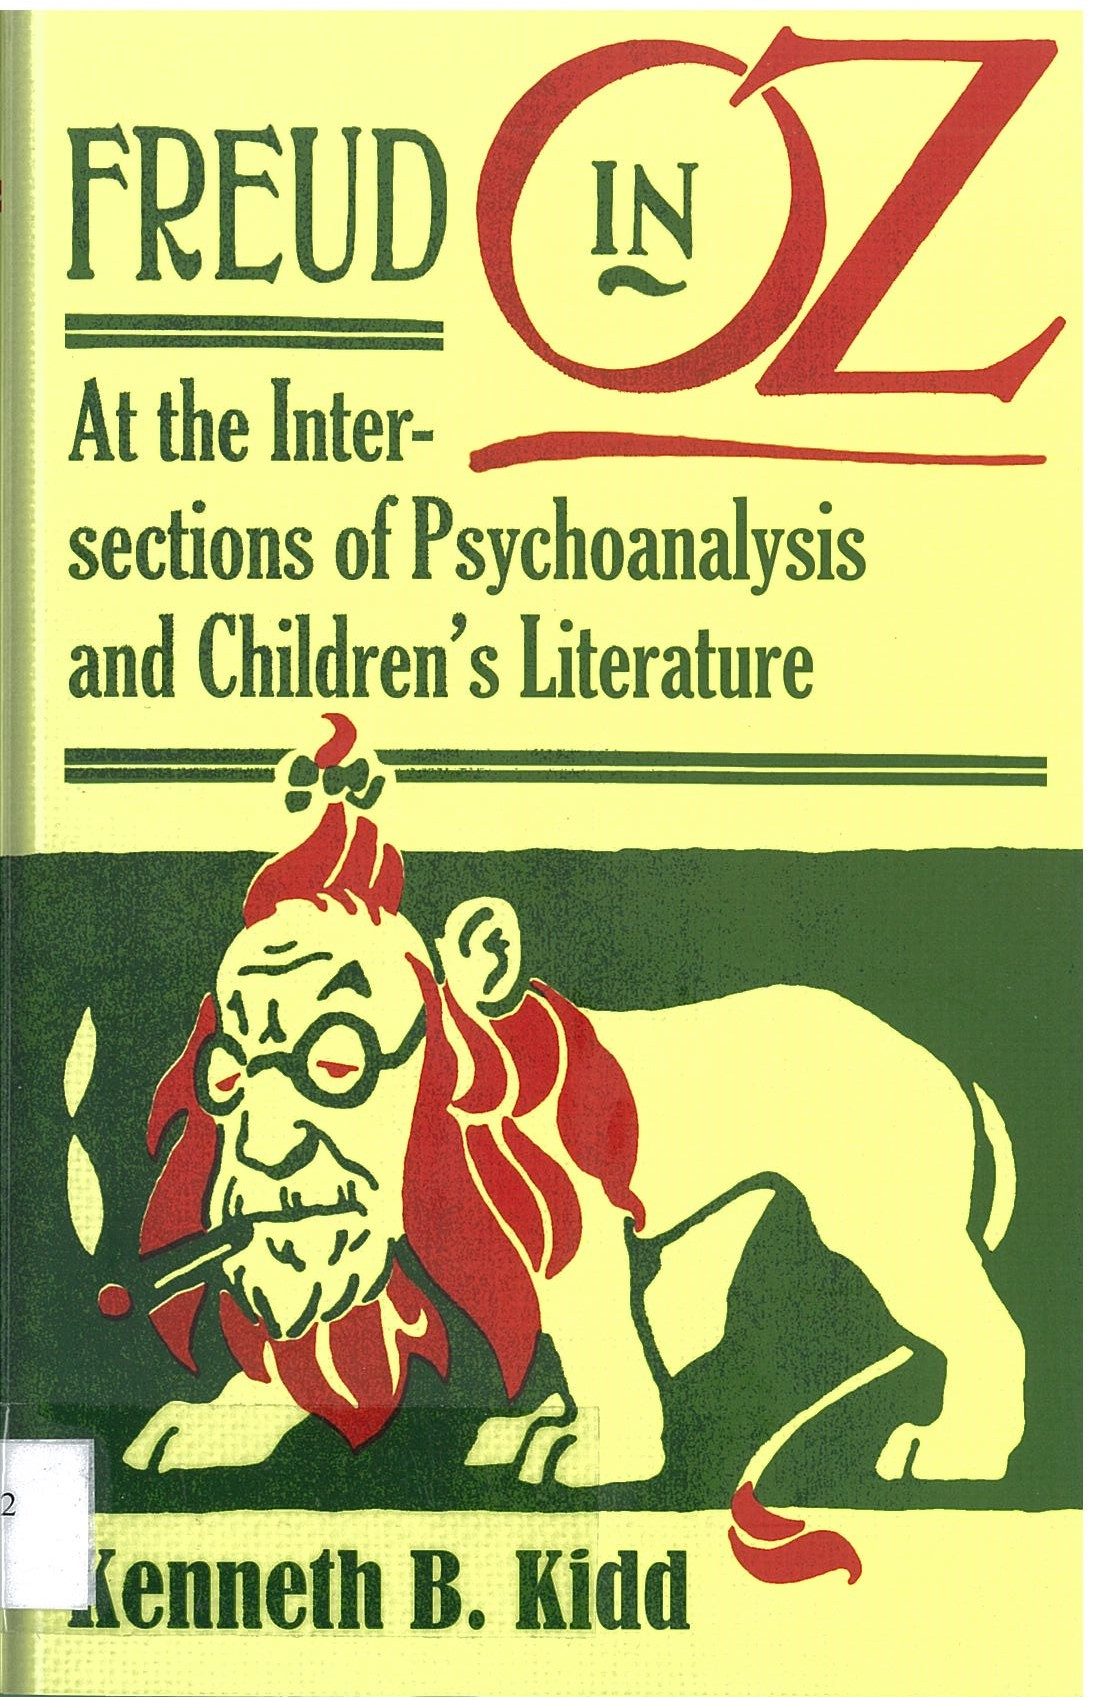 Freud in Oz - At the Intersections of Psychoanalysis and Children's Literature